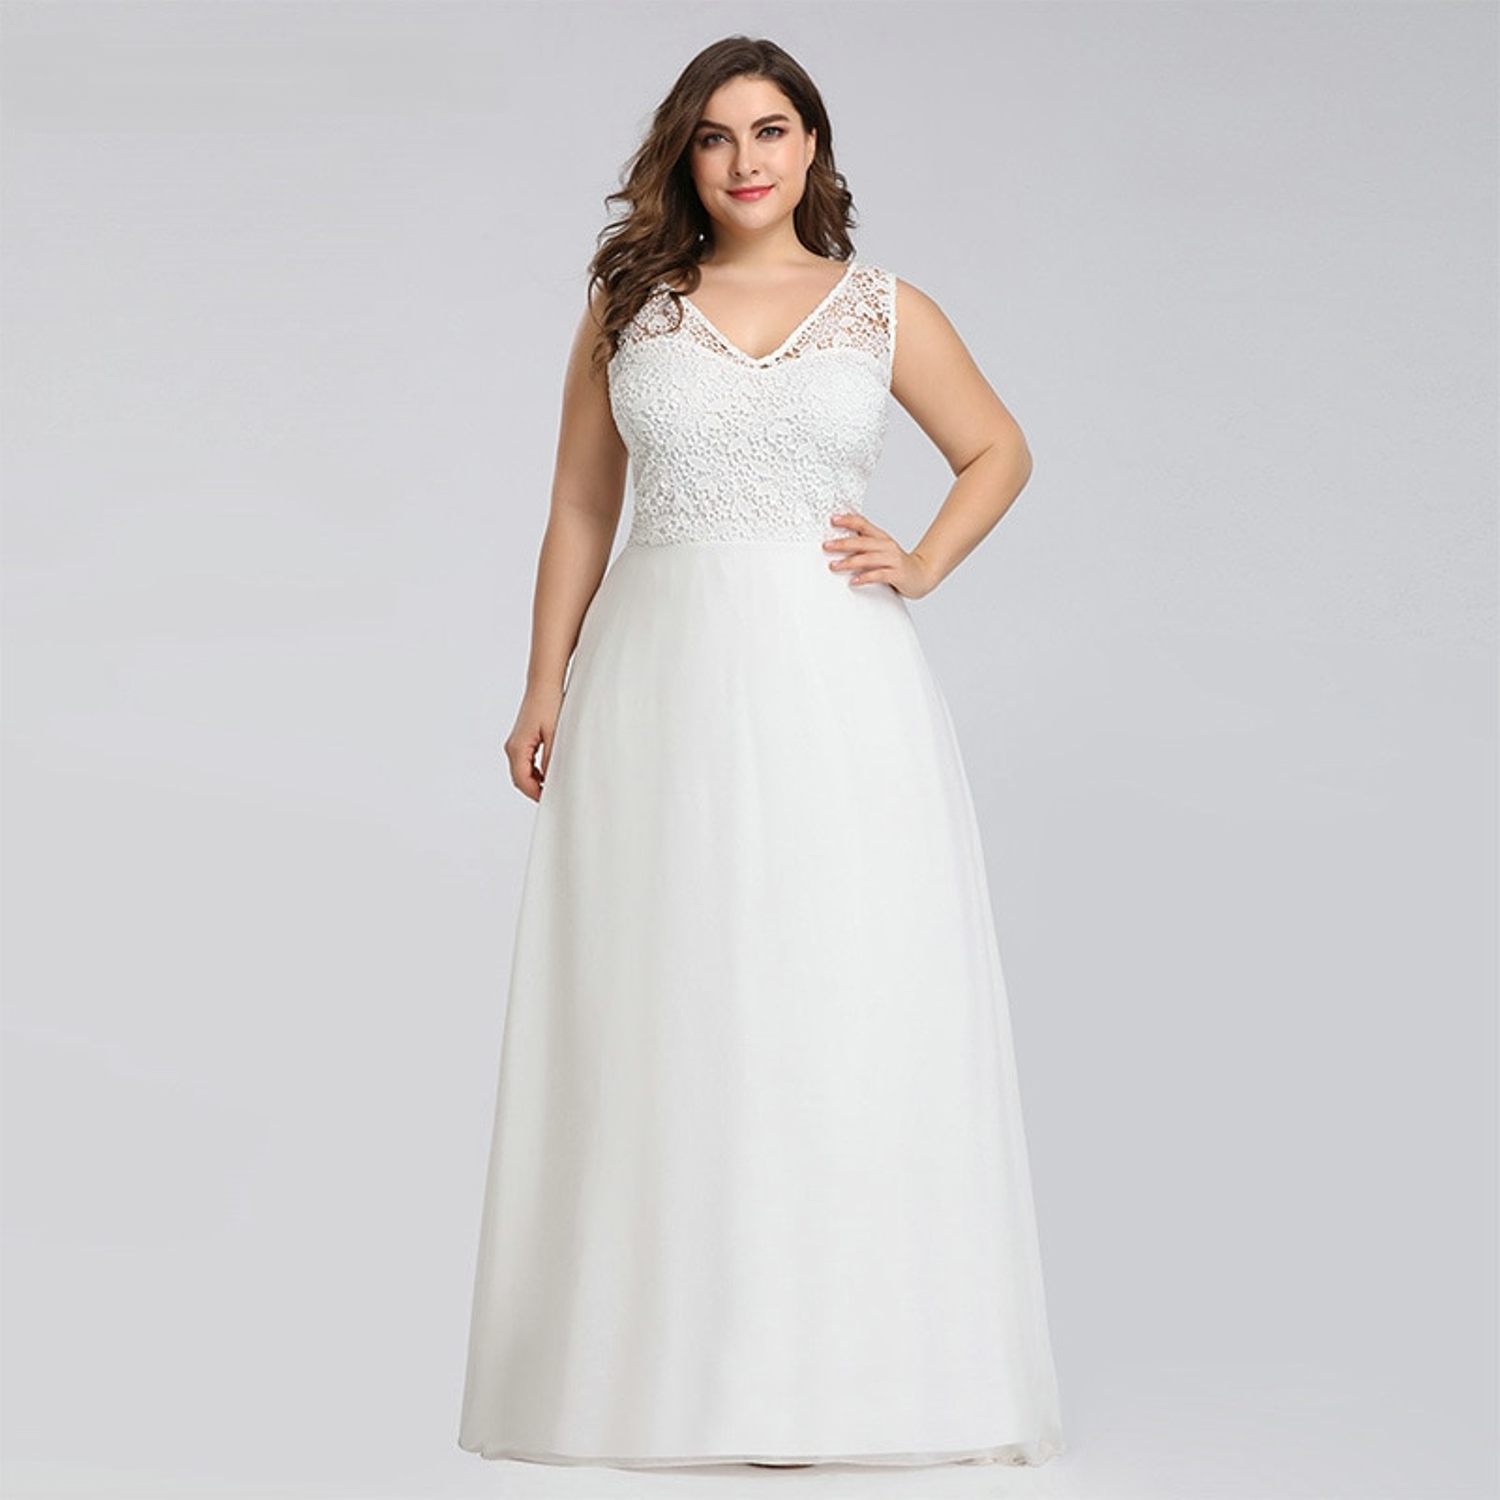 A-line V-neck wedding dress